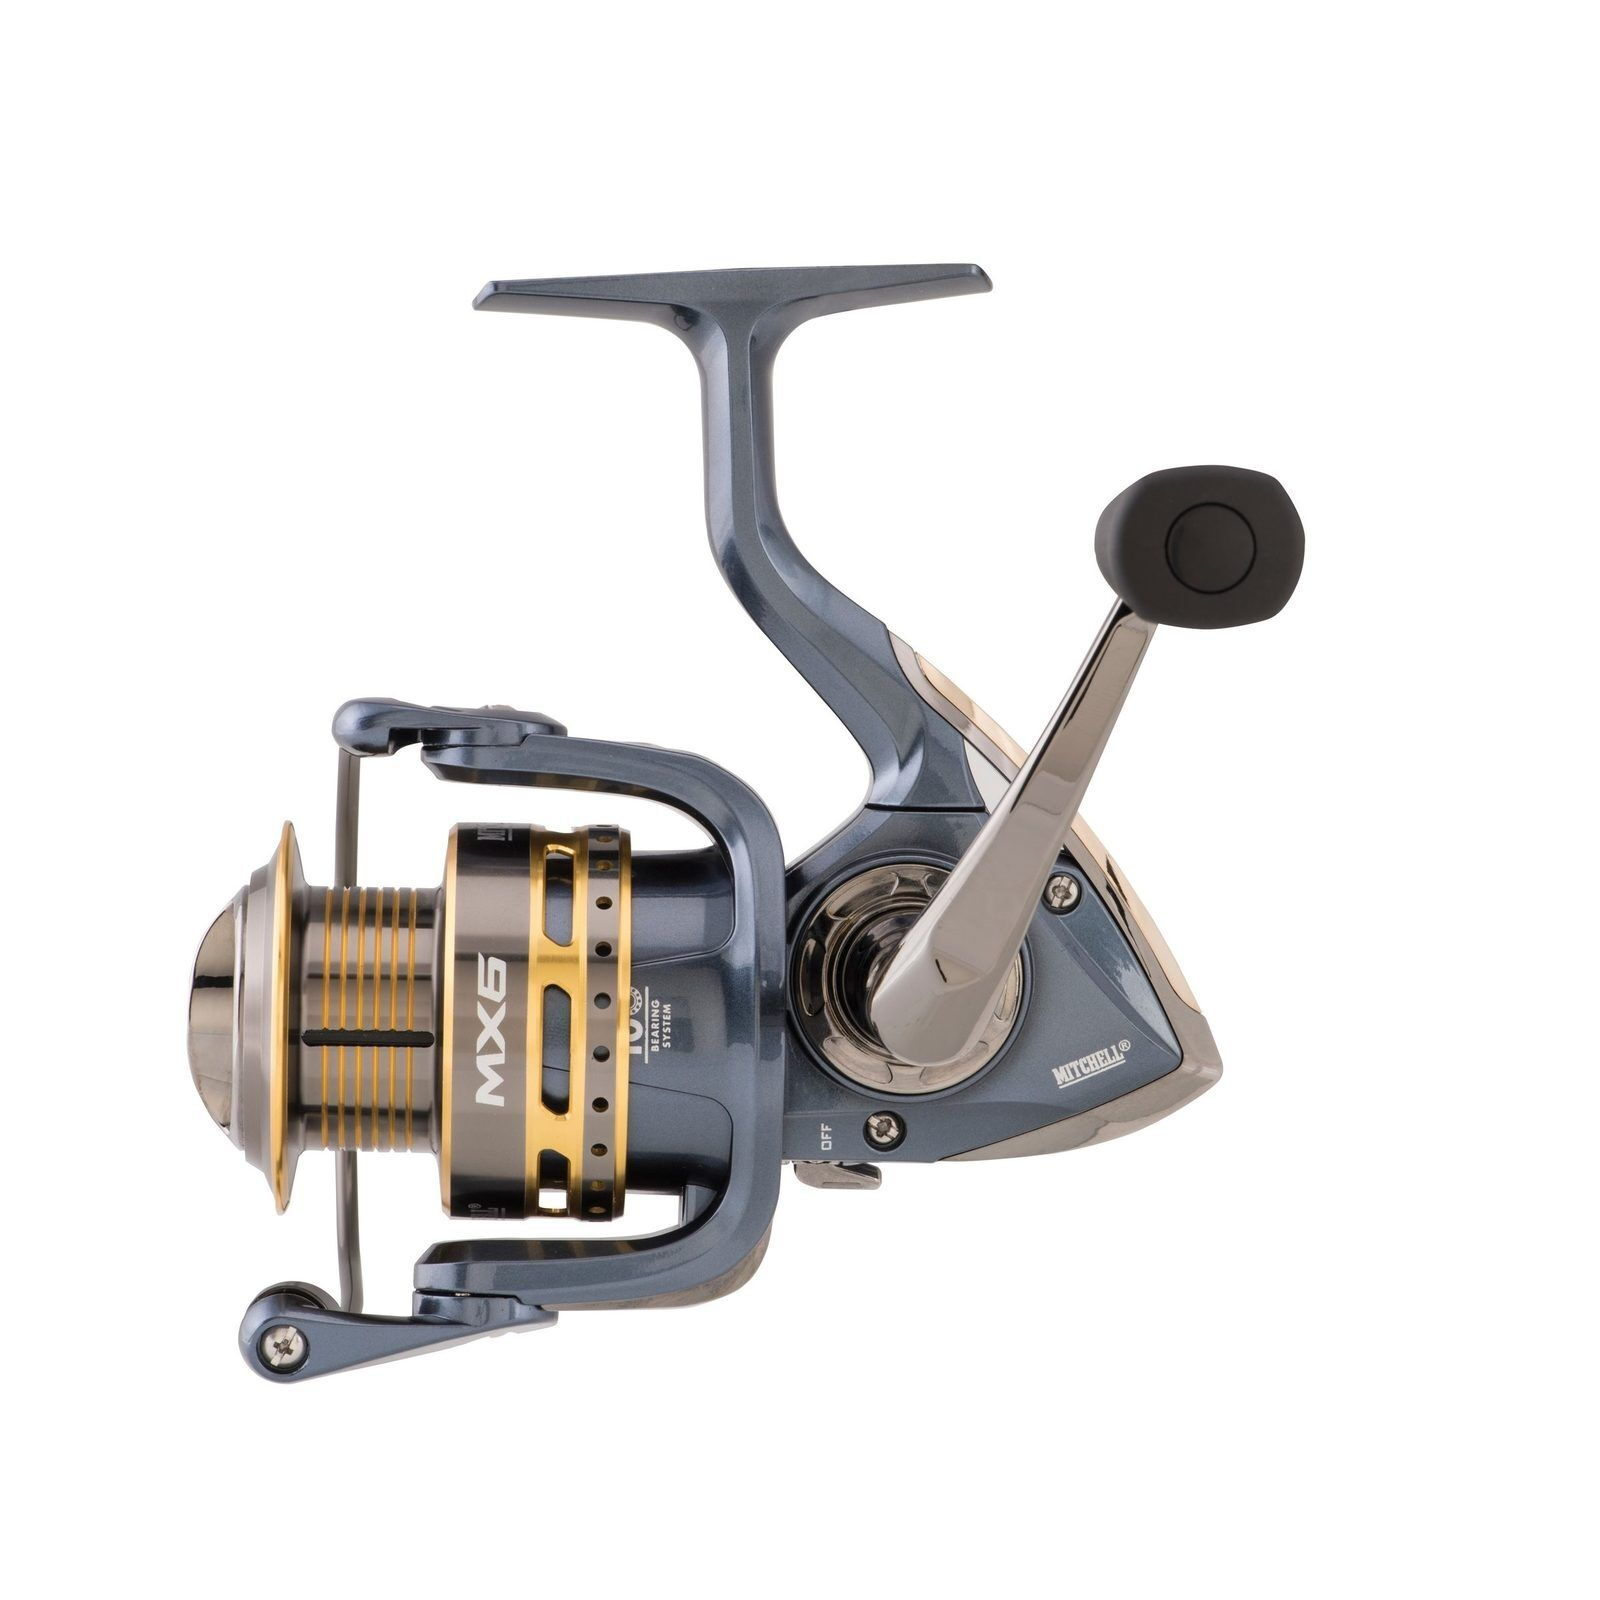 Mitchell NEW MX6 Spinning Fishing Reel - 10 Stainless Ball Bearings - All Sizes